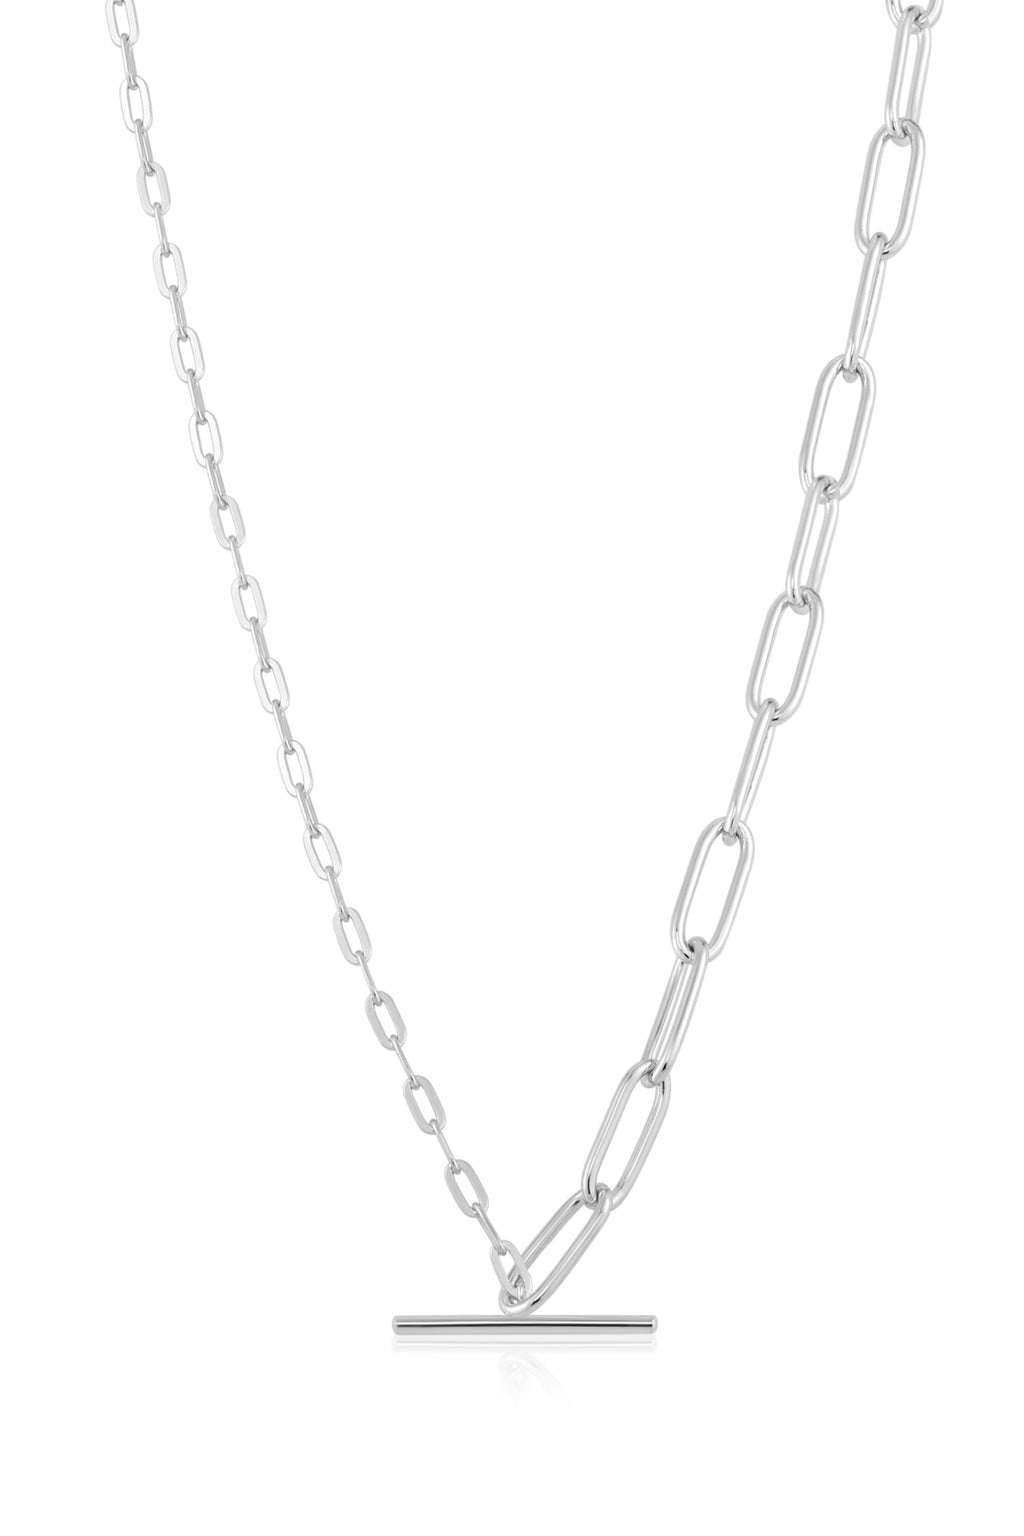 Ania Haie T-Bar Link Silver Necklace - The Mercantile London